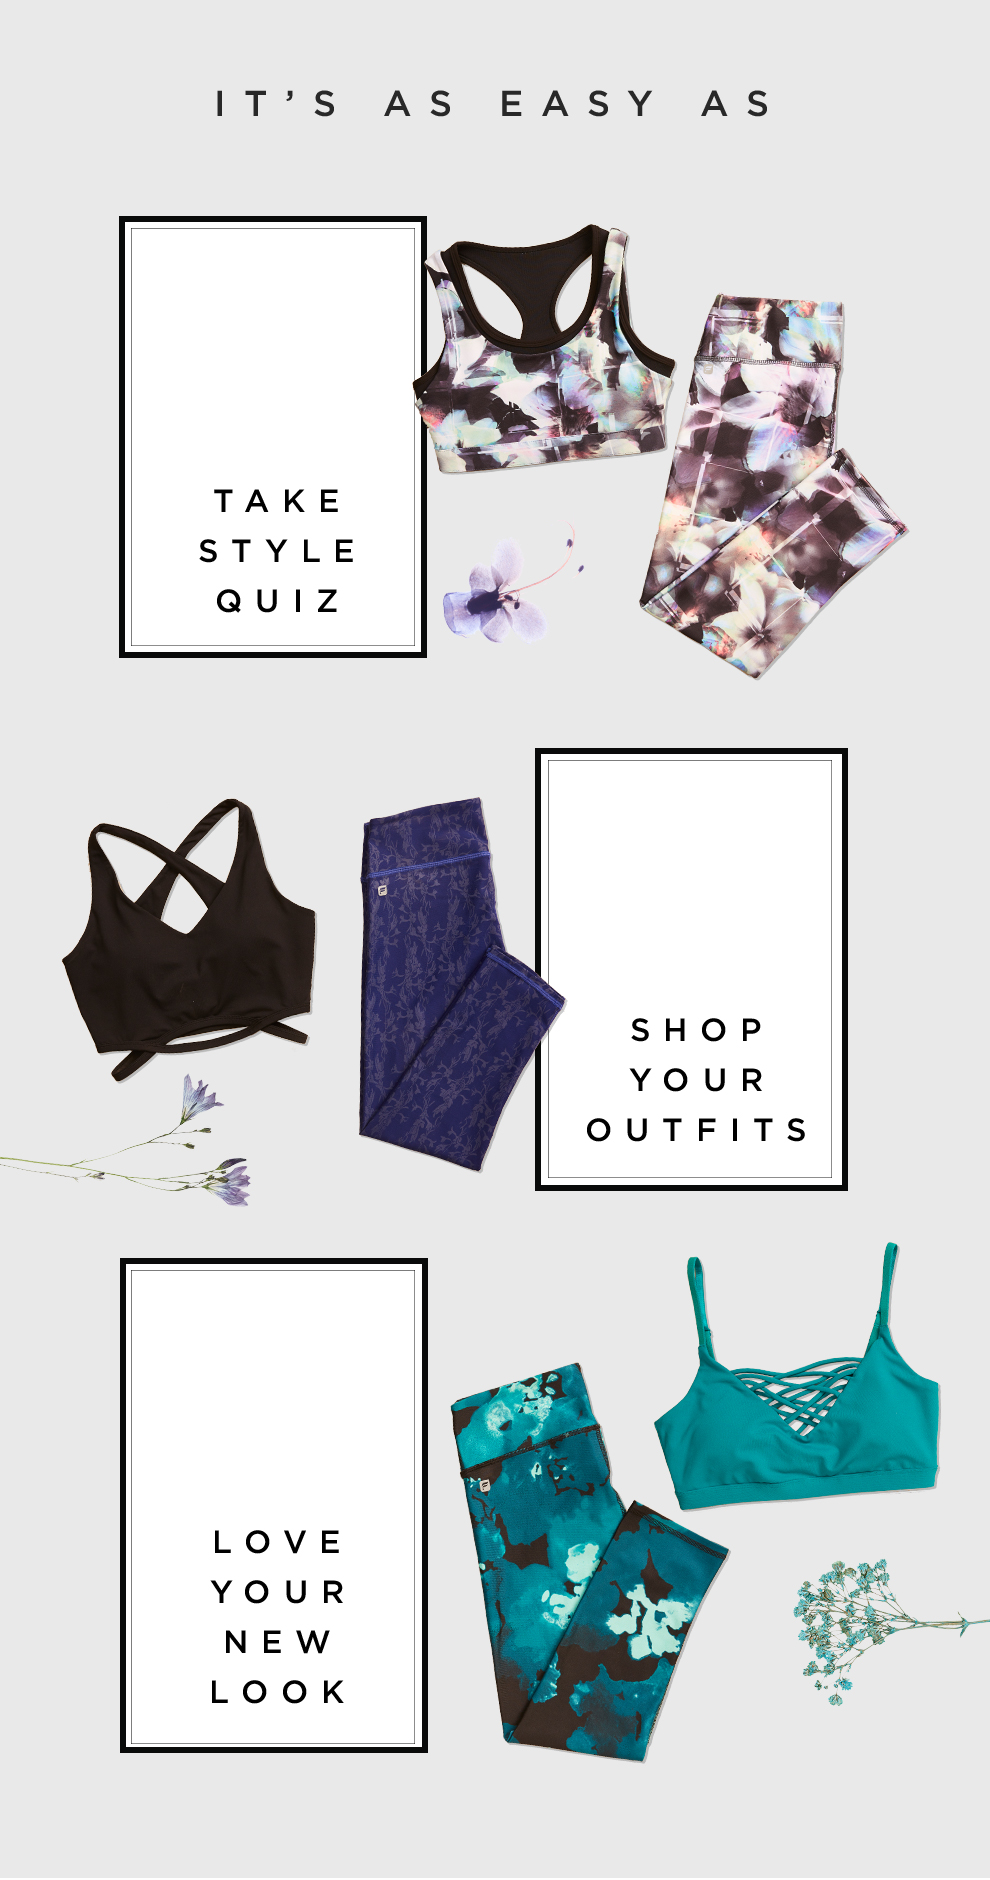 Get Personalized Workout Outfits Picked For You - Take Our Quiz!